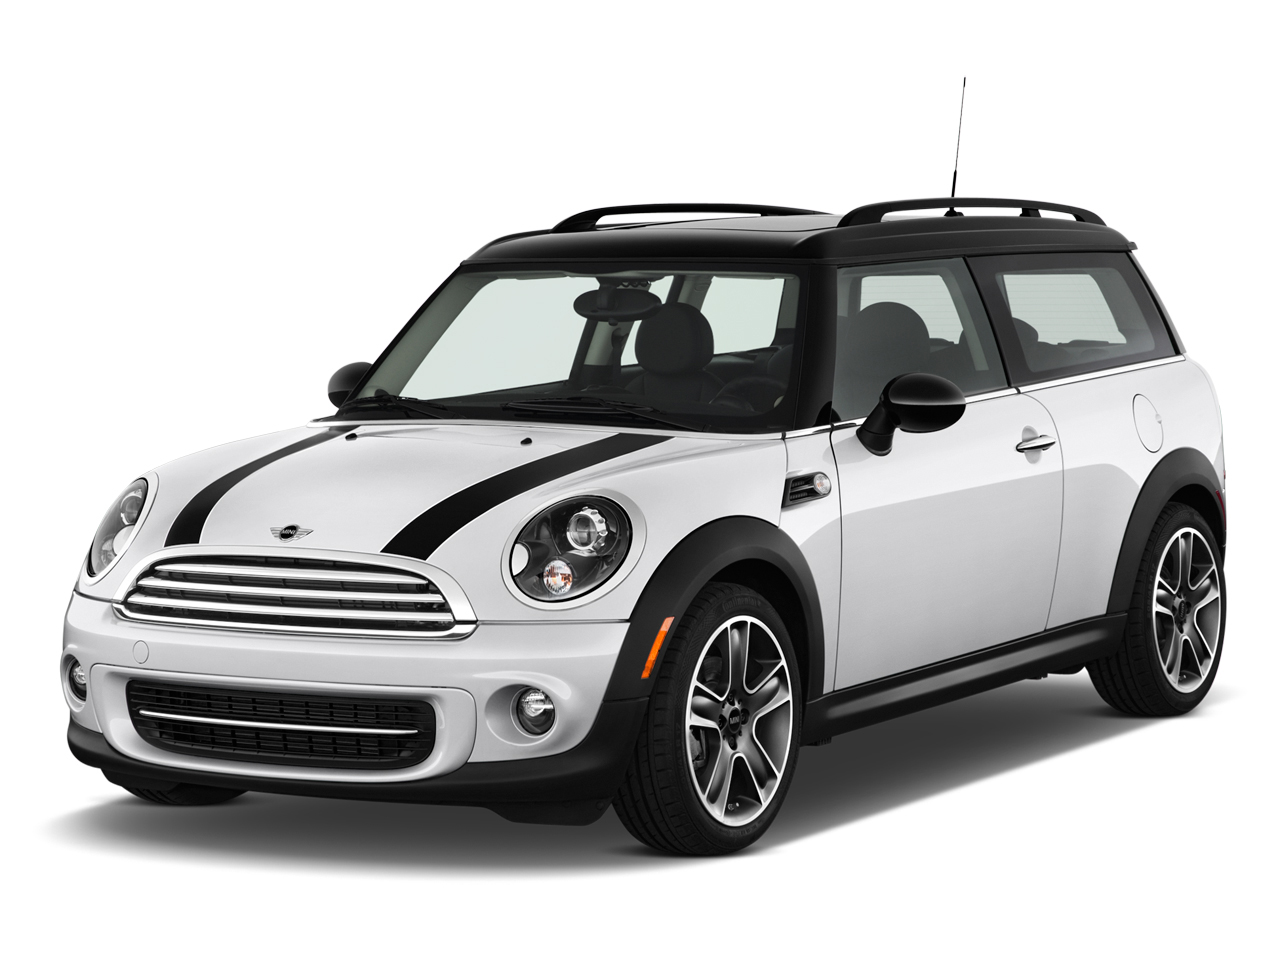 2012 mini cooper clubman review and news motorauthority. Black Bedroom Furniture Sets. Home Design Ideas